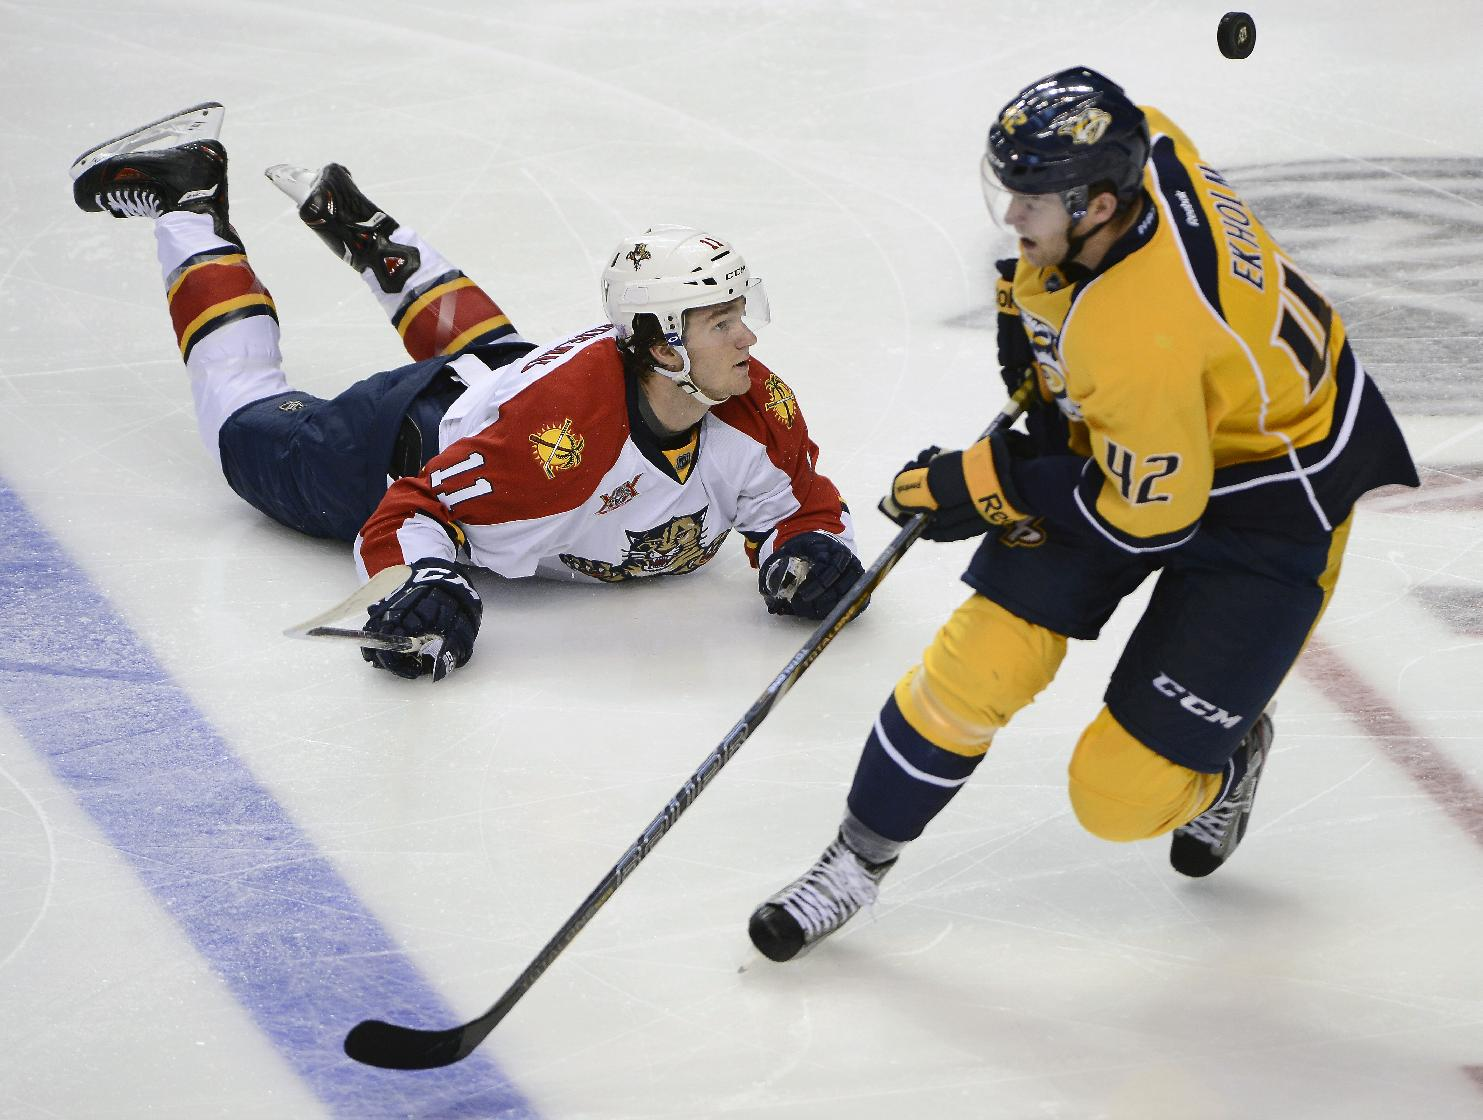 Florida Panthers center Jonathan Huberdeau (11) falls to the ice after Nashville Predators defenseman Jonathan Huberdeau, of Sweden, knocked the puck away in the second period of an NHL hockey game on Tuesday, Oct. 15, 2013, in Nashville, Tenn